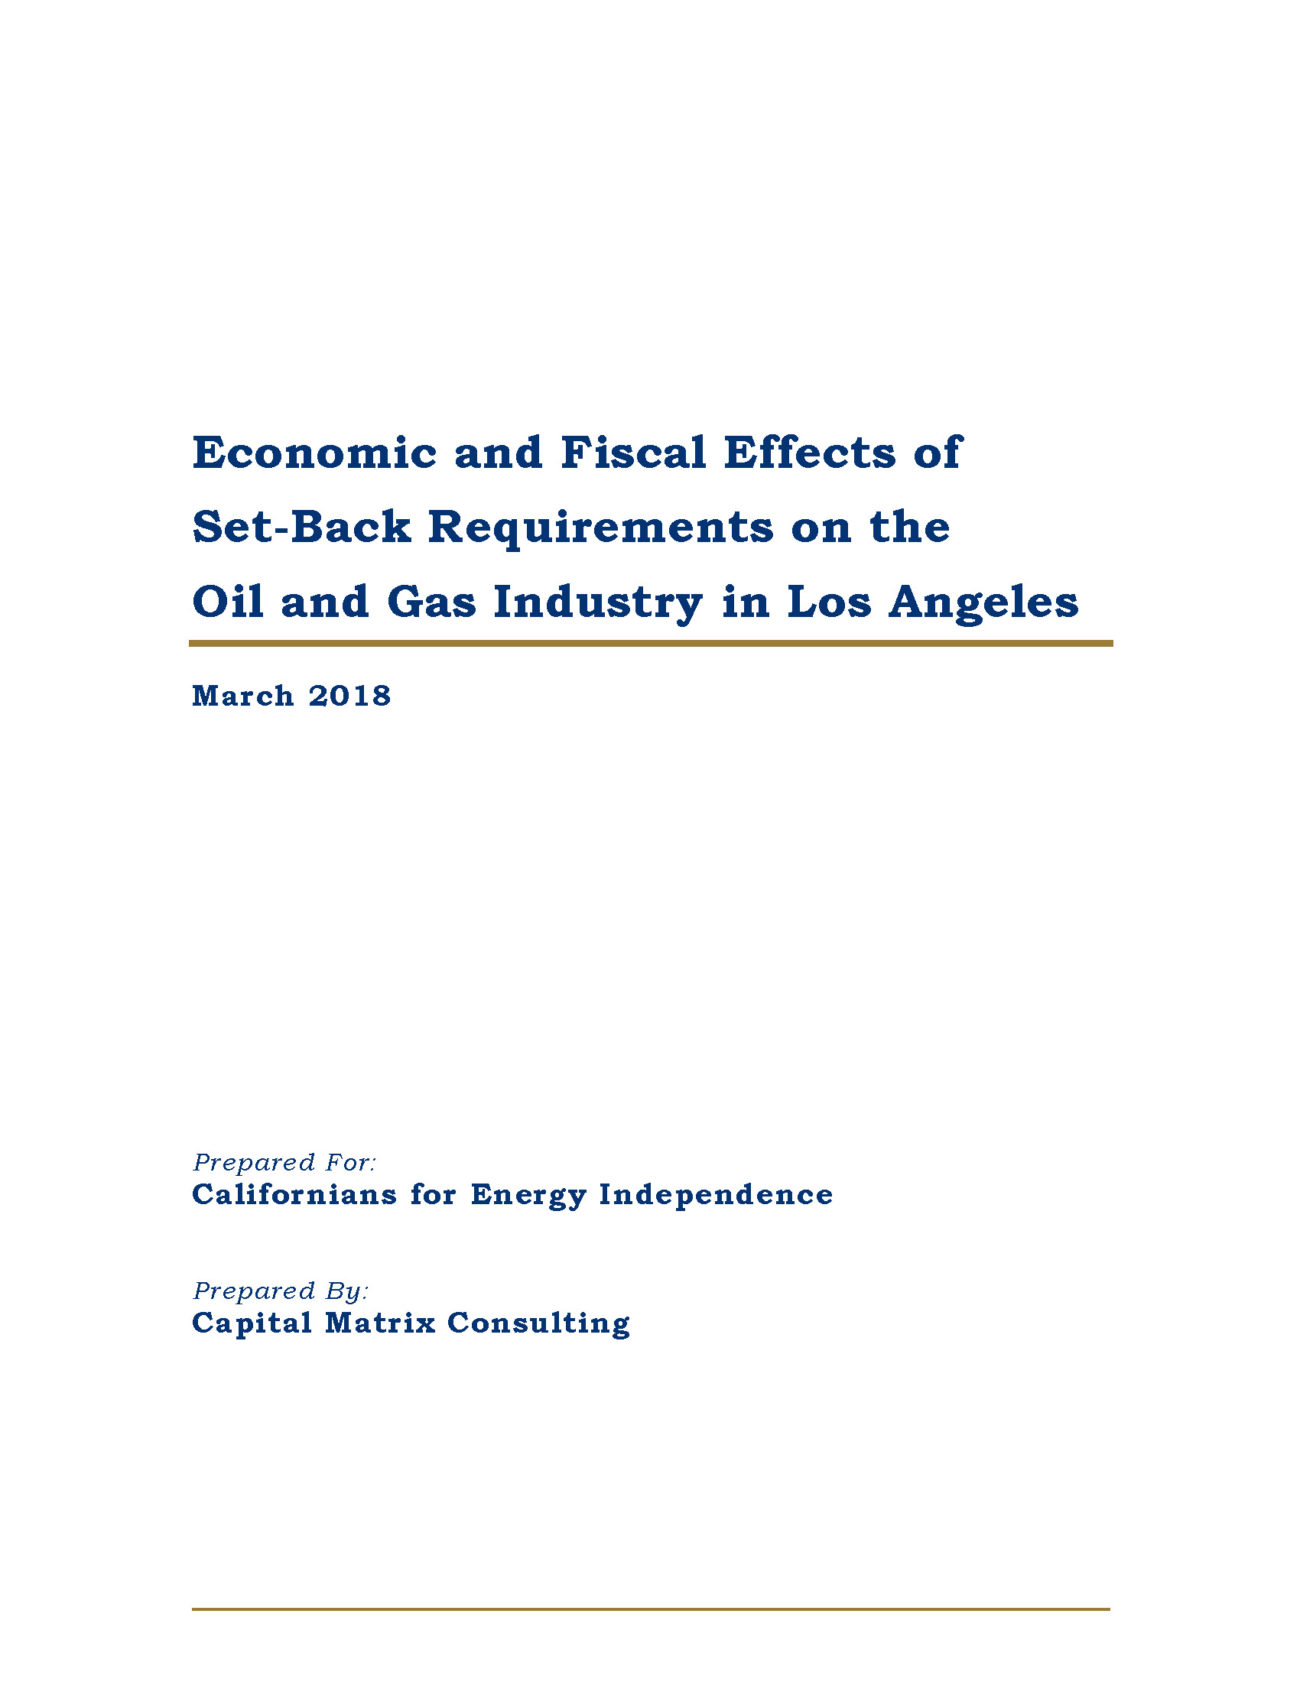 Los Angeles Fiscal Study